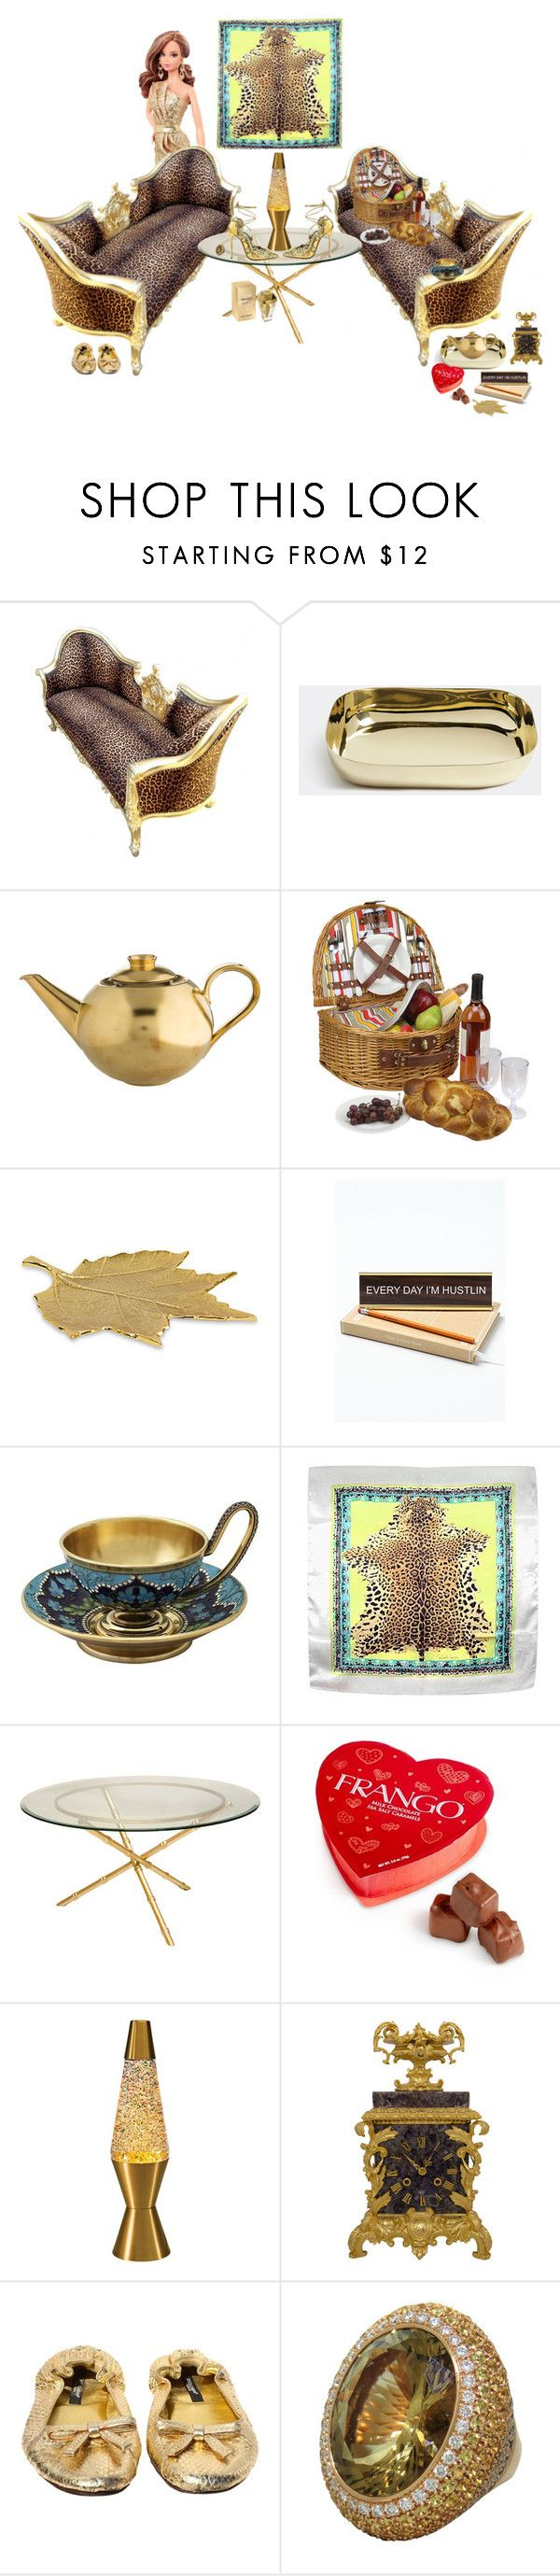 """""""leopardy jeopardy"""" by didesi ❤ liked on Polyvore featuring interior, interiors, interior design, home, home decor, interior decorating, Tina Frey Designs, Diane Von Furstenberg, Pampa Bay and Roberto Cavalli"""